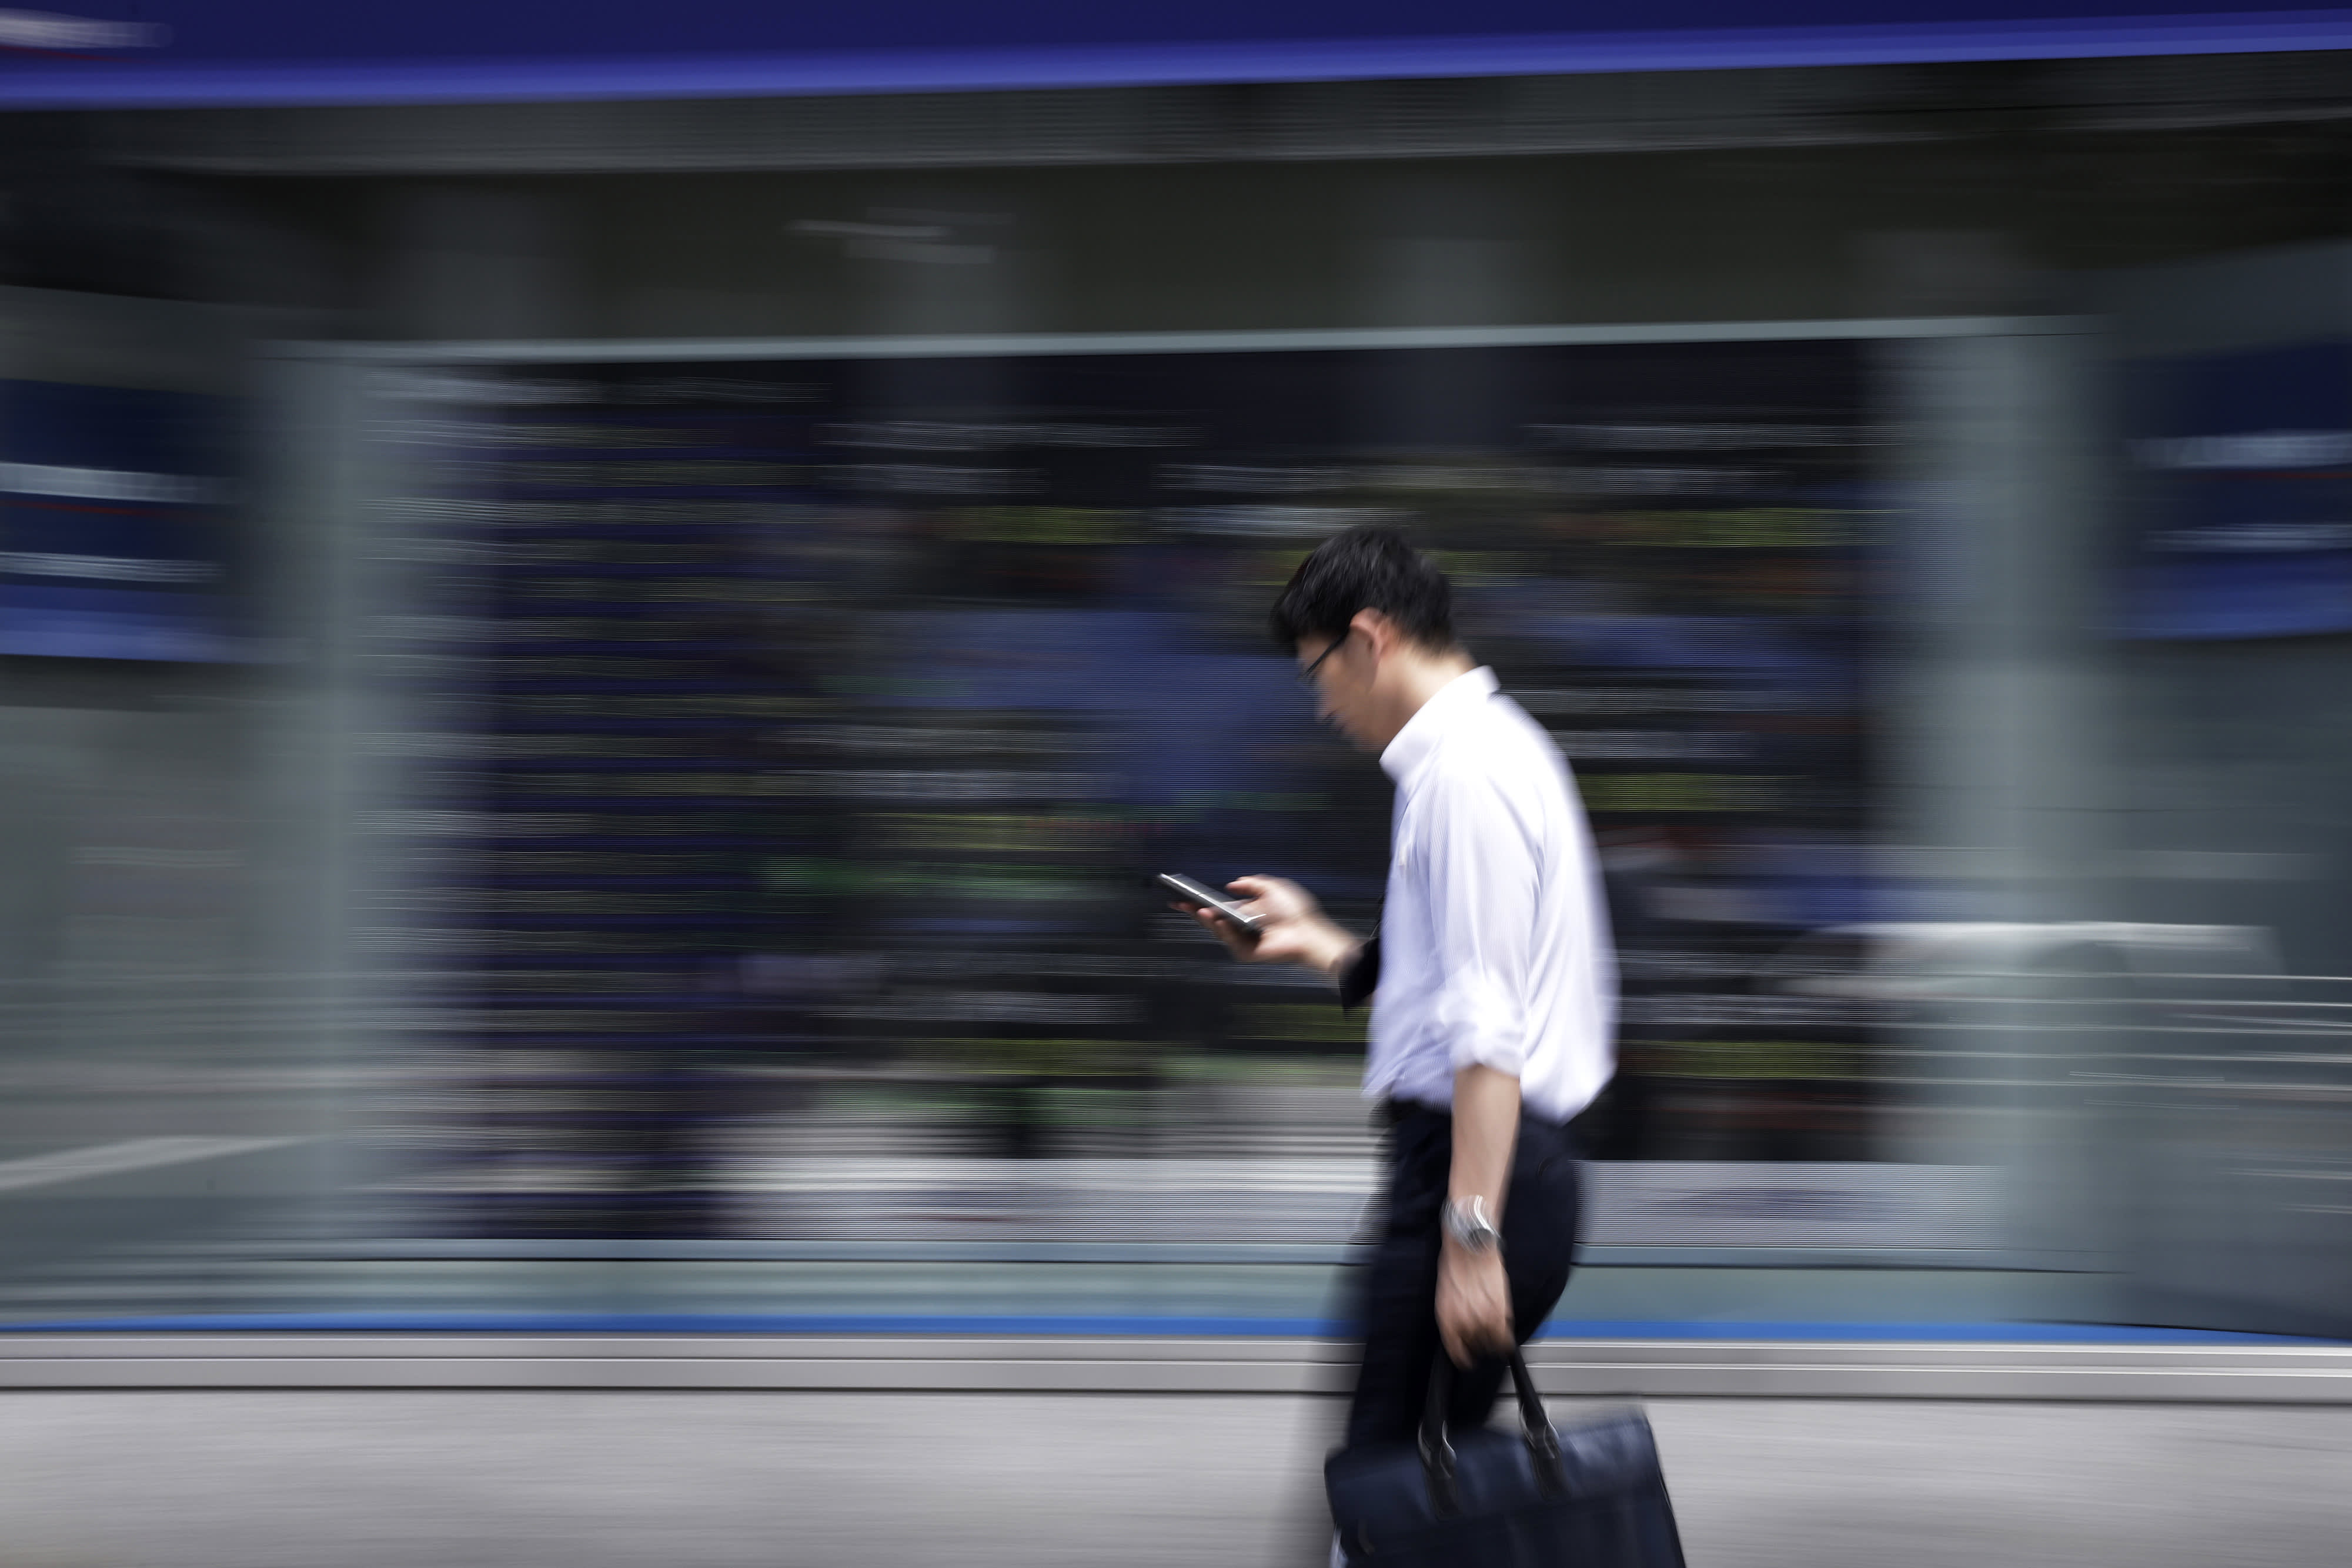 Asia Pacific stocks mixed as investors await Fed interest rate decision